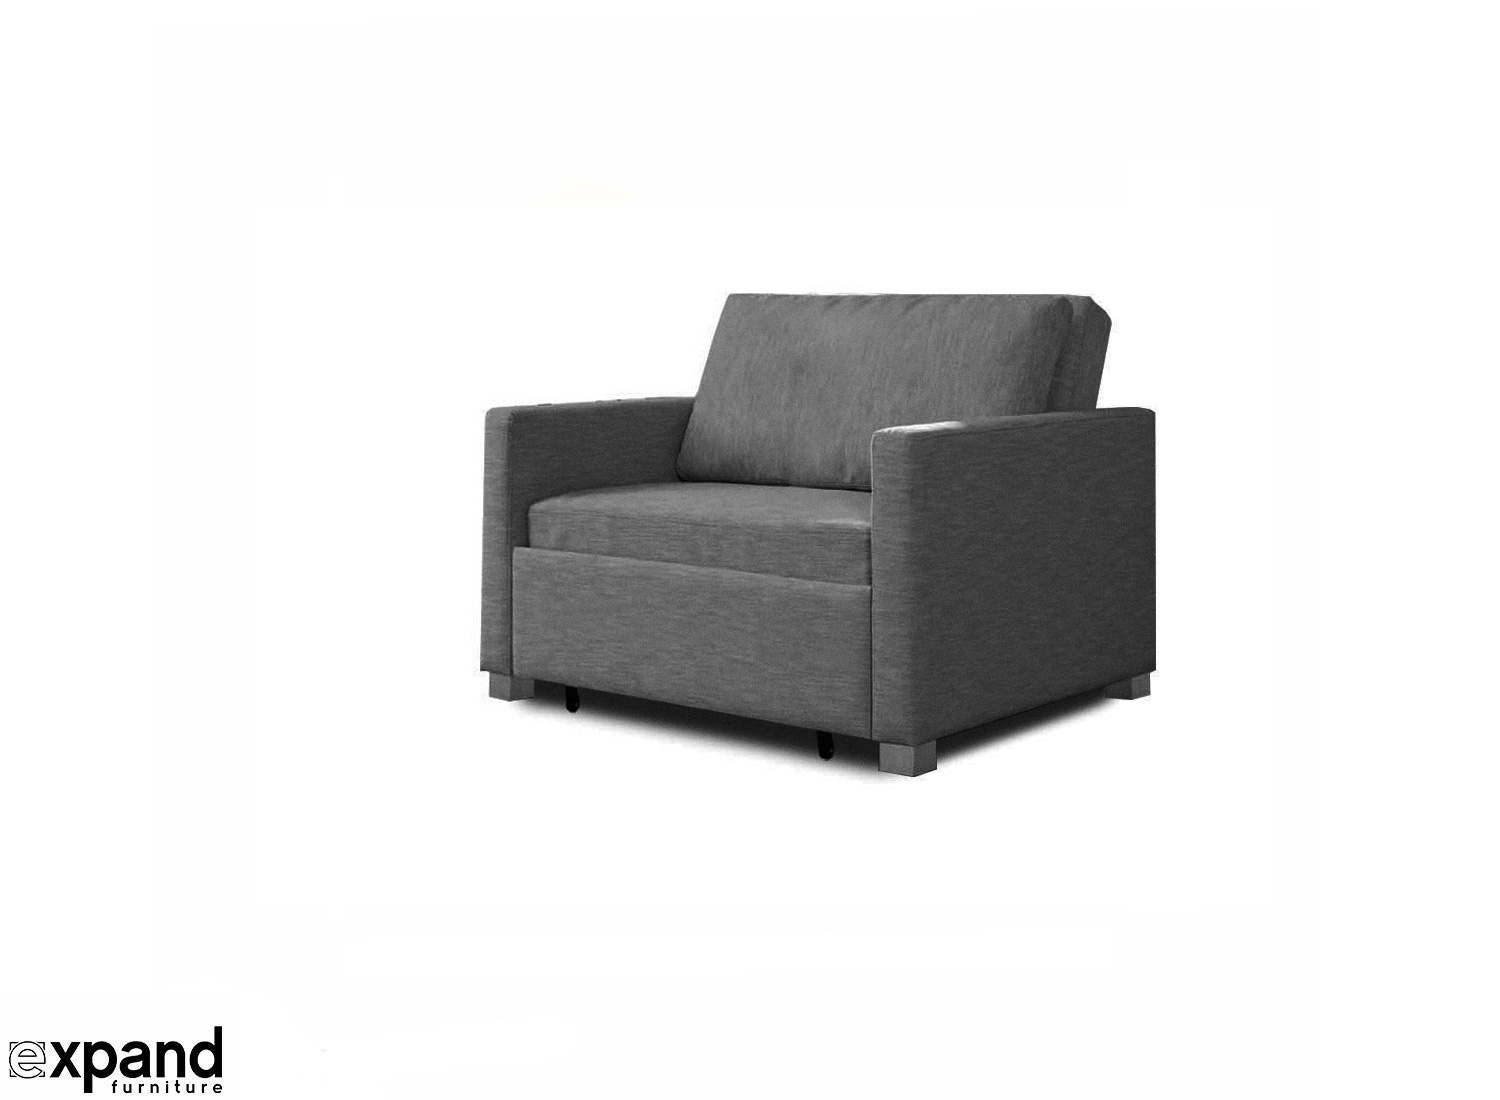 Harmony – Single Sofa Bed With Memory Foam | Expand Furniture In Single Sofas (View 3 of 10)